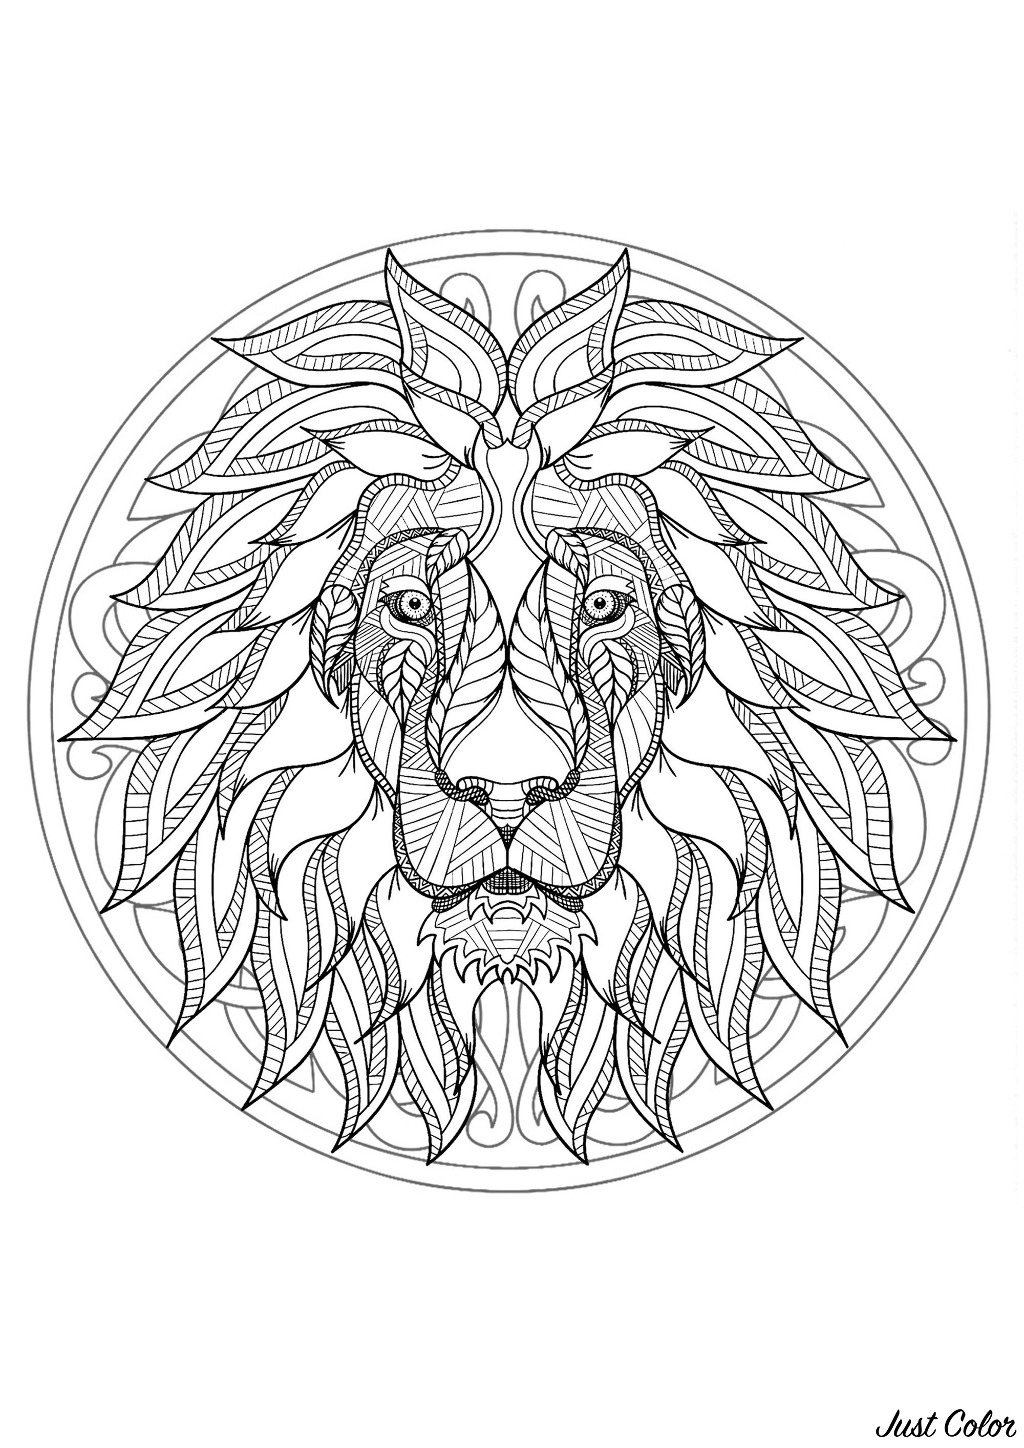 Complex Mandala Coloring Page With Majestic Lion Head 1 Difficult